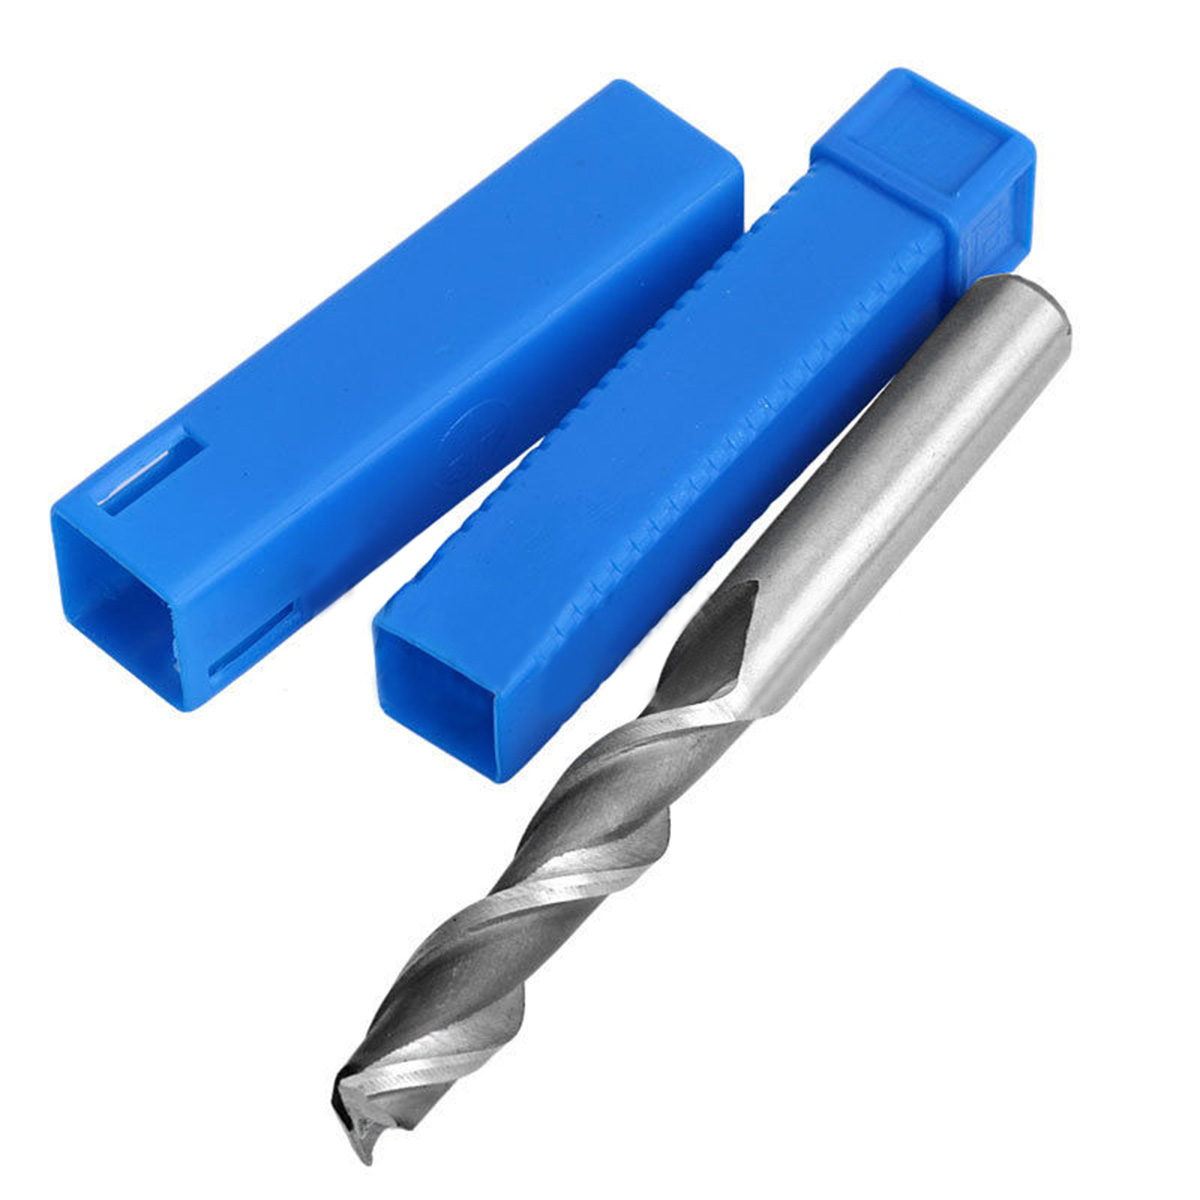 1pc 2 Flute HSS & Aluminium End Mill Extra Long CNC Milling Cutter Bit 4/6/8/10mm with Box